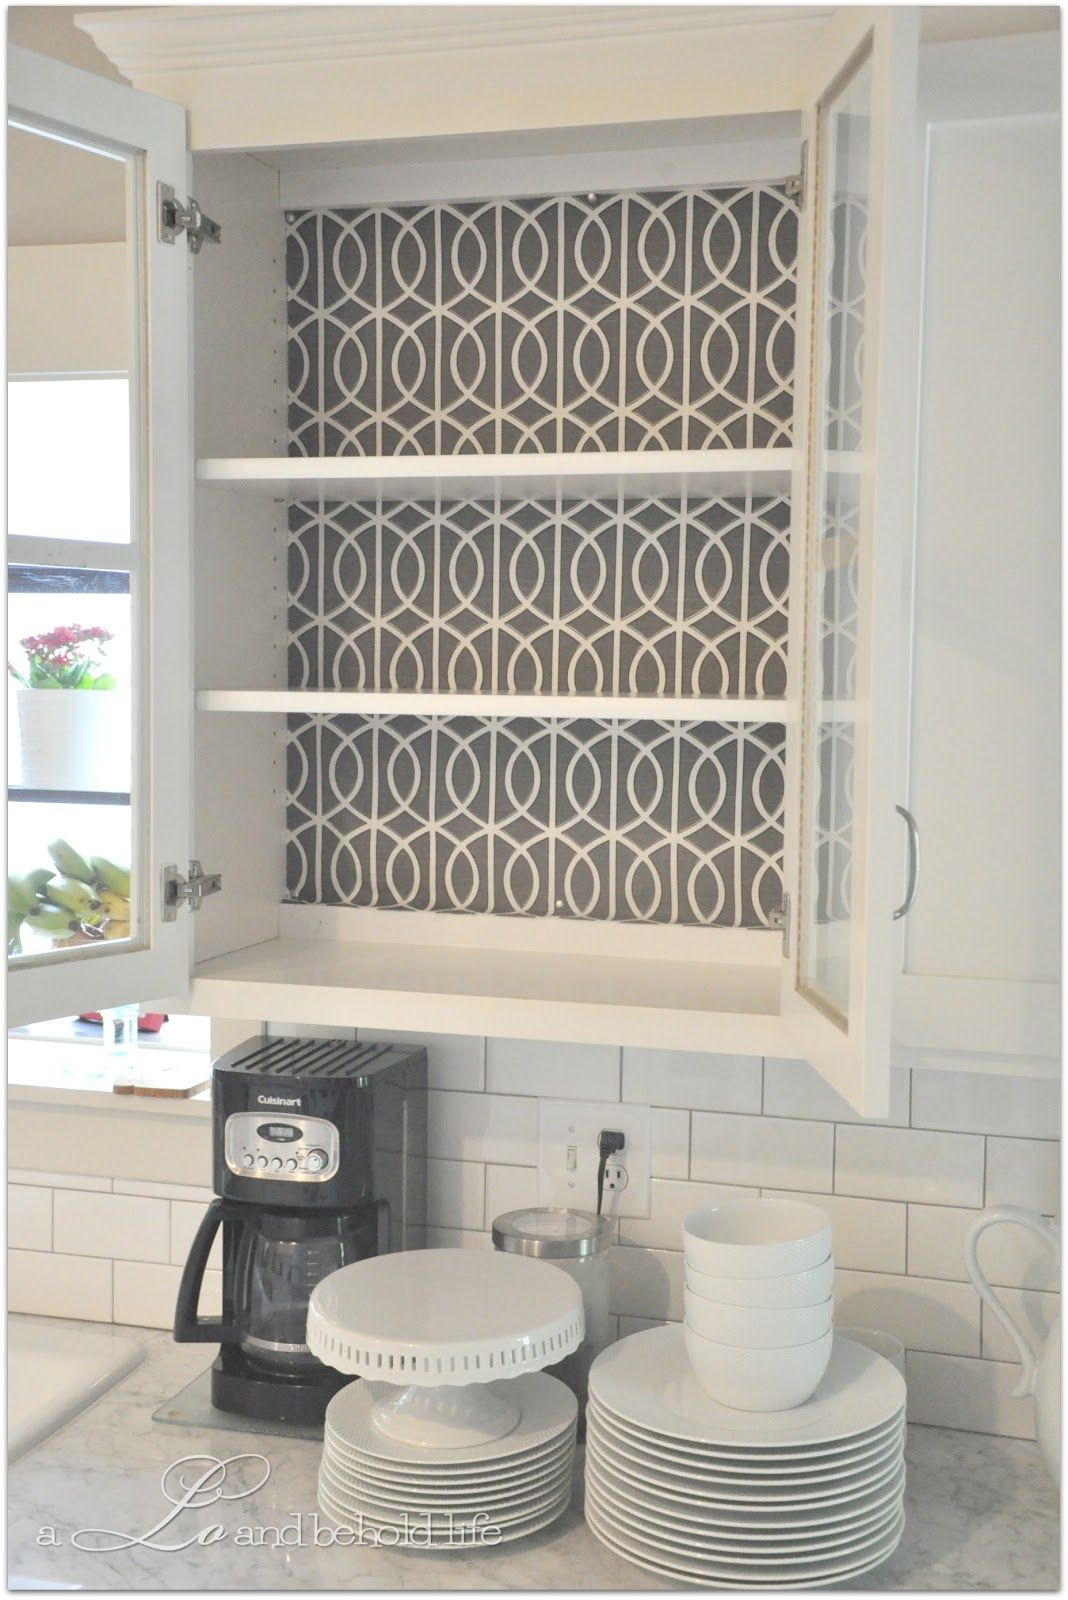 Use Fabric For The Backing Of Shelves Instead Of Paint Or Wallpaper Love This Idea For Glass Front Cabinet Glass Front Cabinets Kitchen Renovation Diy Kitchen